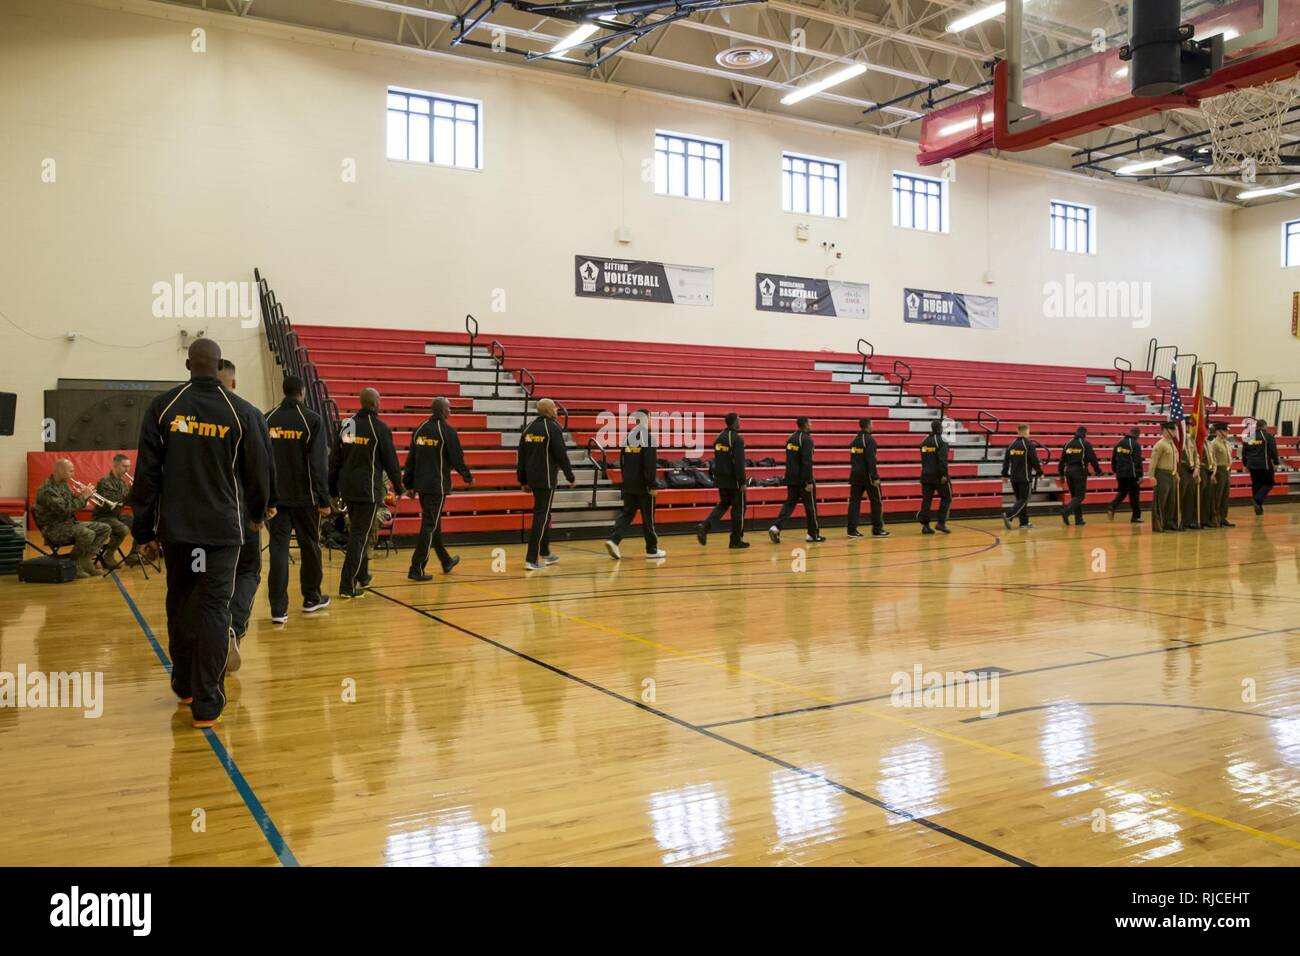 U.S. military members of the All Army basketball team arrive for the 2016  Armed Forces Basketball d74edf4d6cd